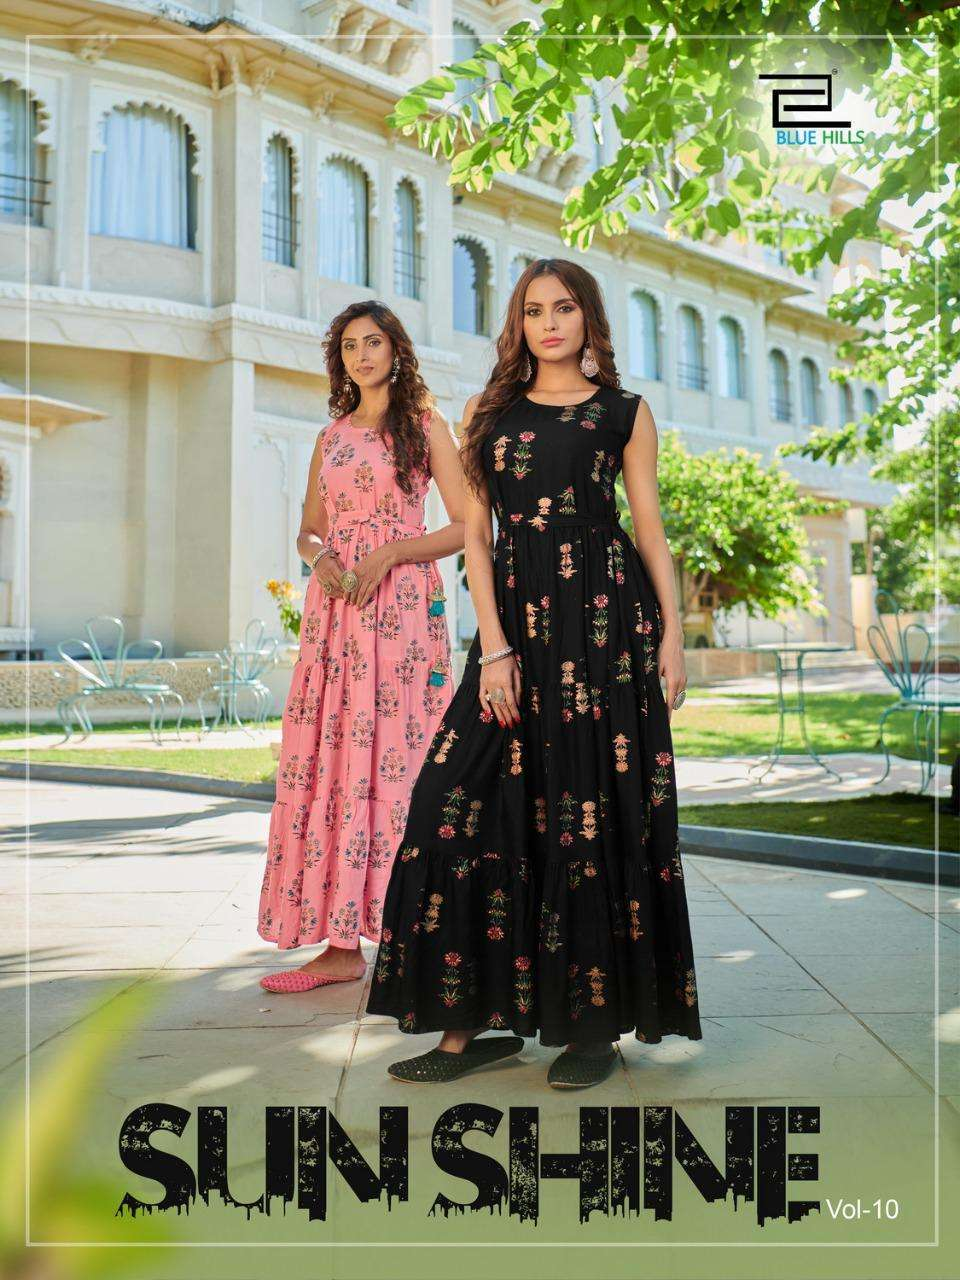 Blue Hills sunshine Vol 10 Rayon printed Long gown collection